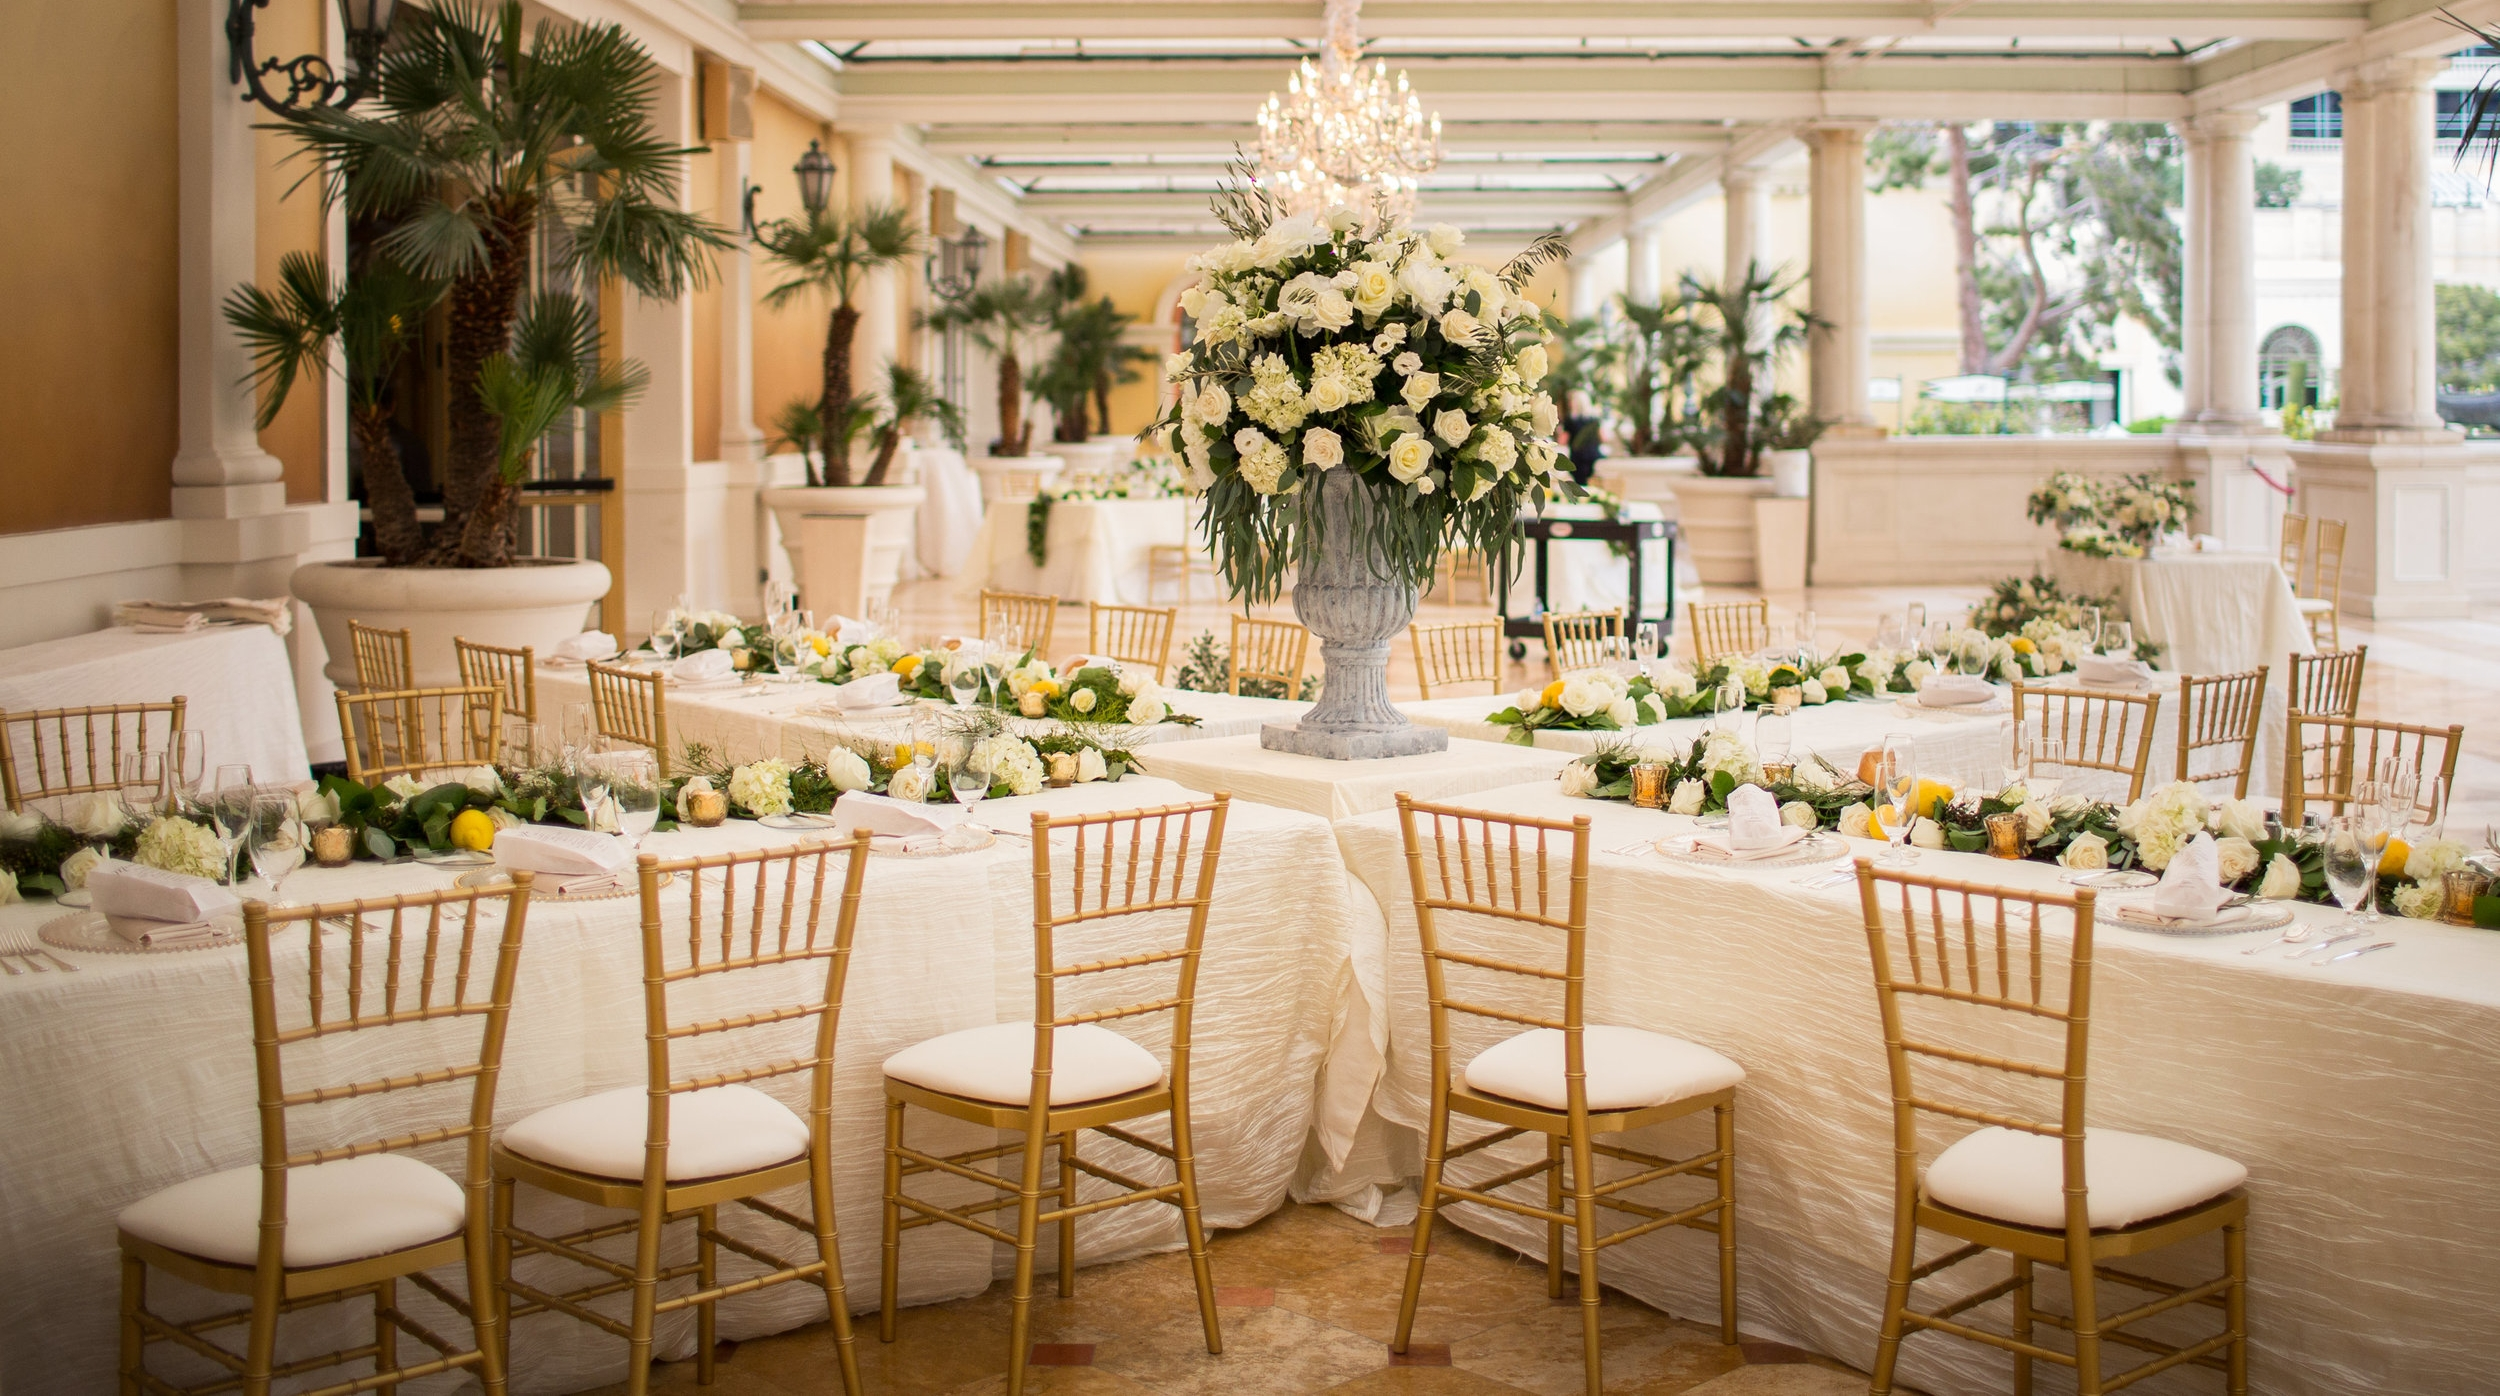 White and green Tuscan Wedding at Bellagio Las vegas.Wedding Planner:  Andrea Eppolito Events   | Photography  D2 Tuscan Wedding Photography  | Videography  M Place Productions  | Venue & Catering:  Bellagio  | Floral & Decor:  Destinations by Design  | Lighting:  LED Unplugged   | Music: Classical Entertainment &  DJ Mike Fox  | Hair & Make Up:  Amelia C & Co